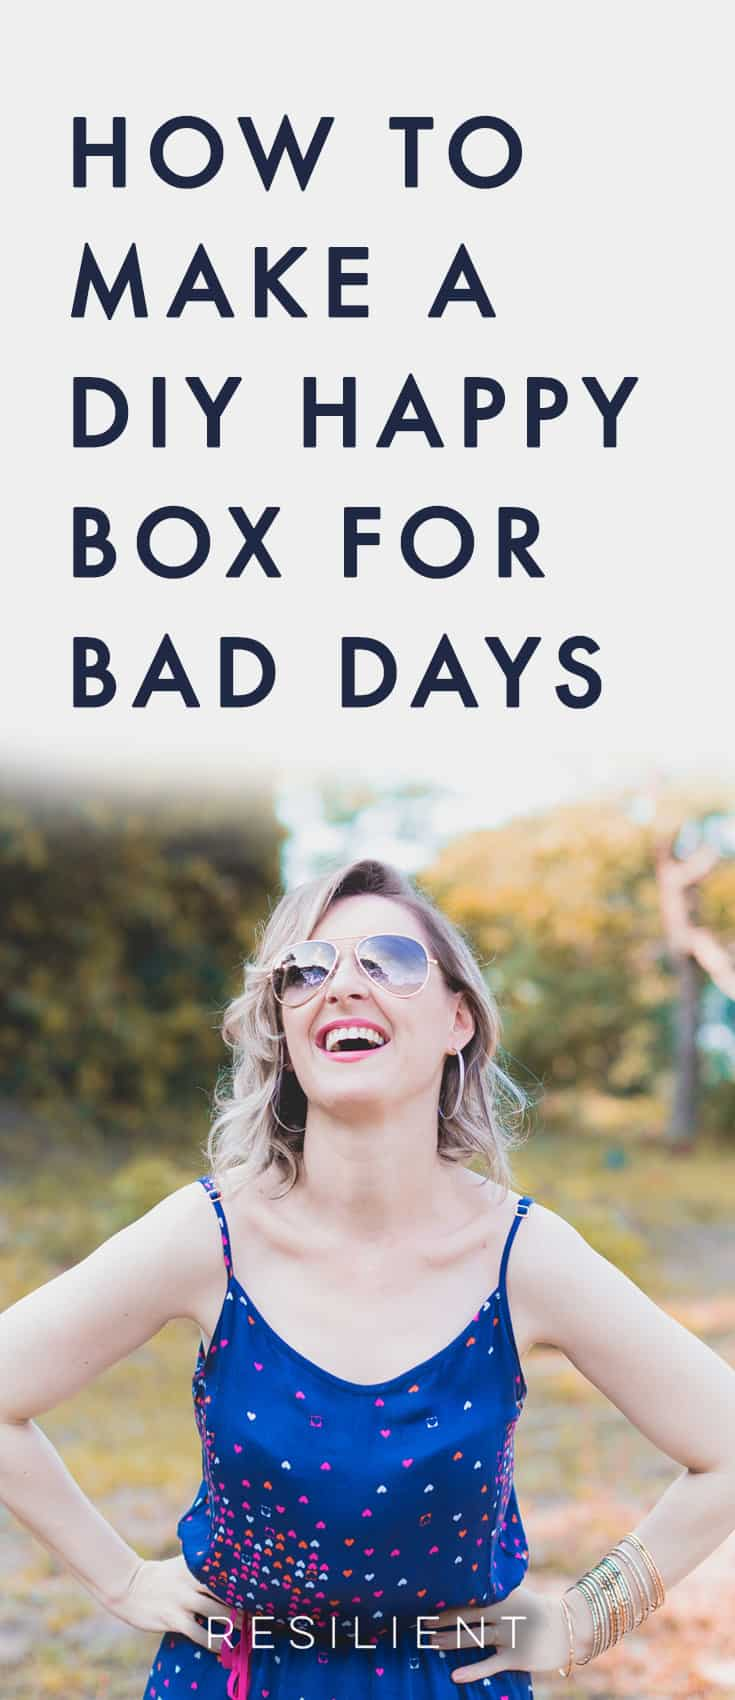 Sometimes when we have a bad day it would be nice if we ...